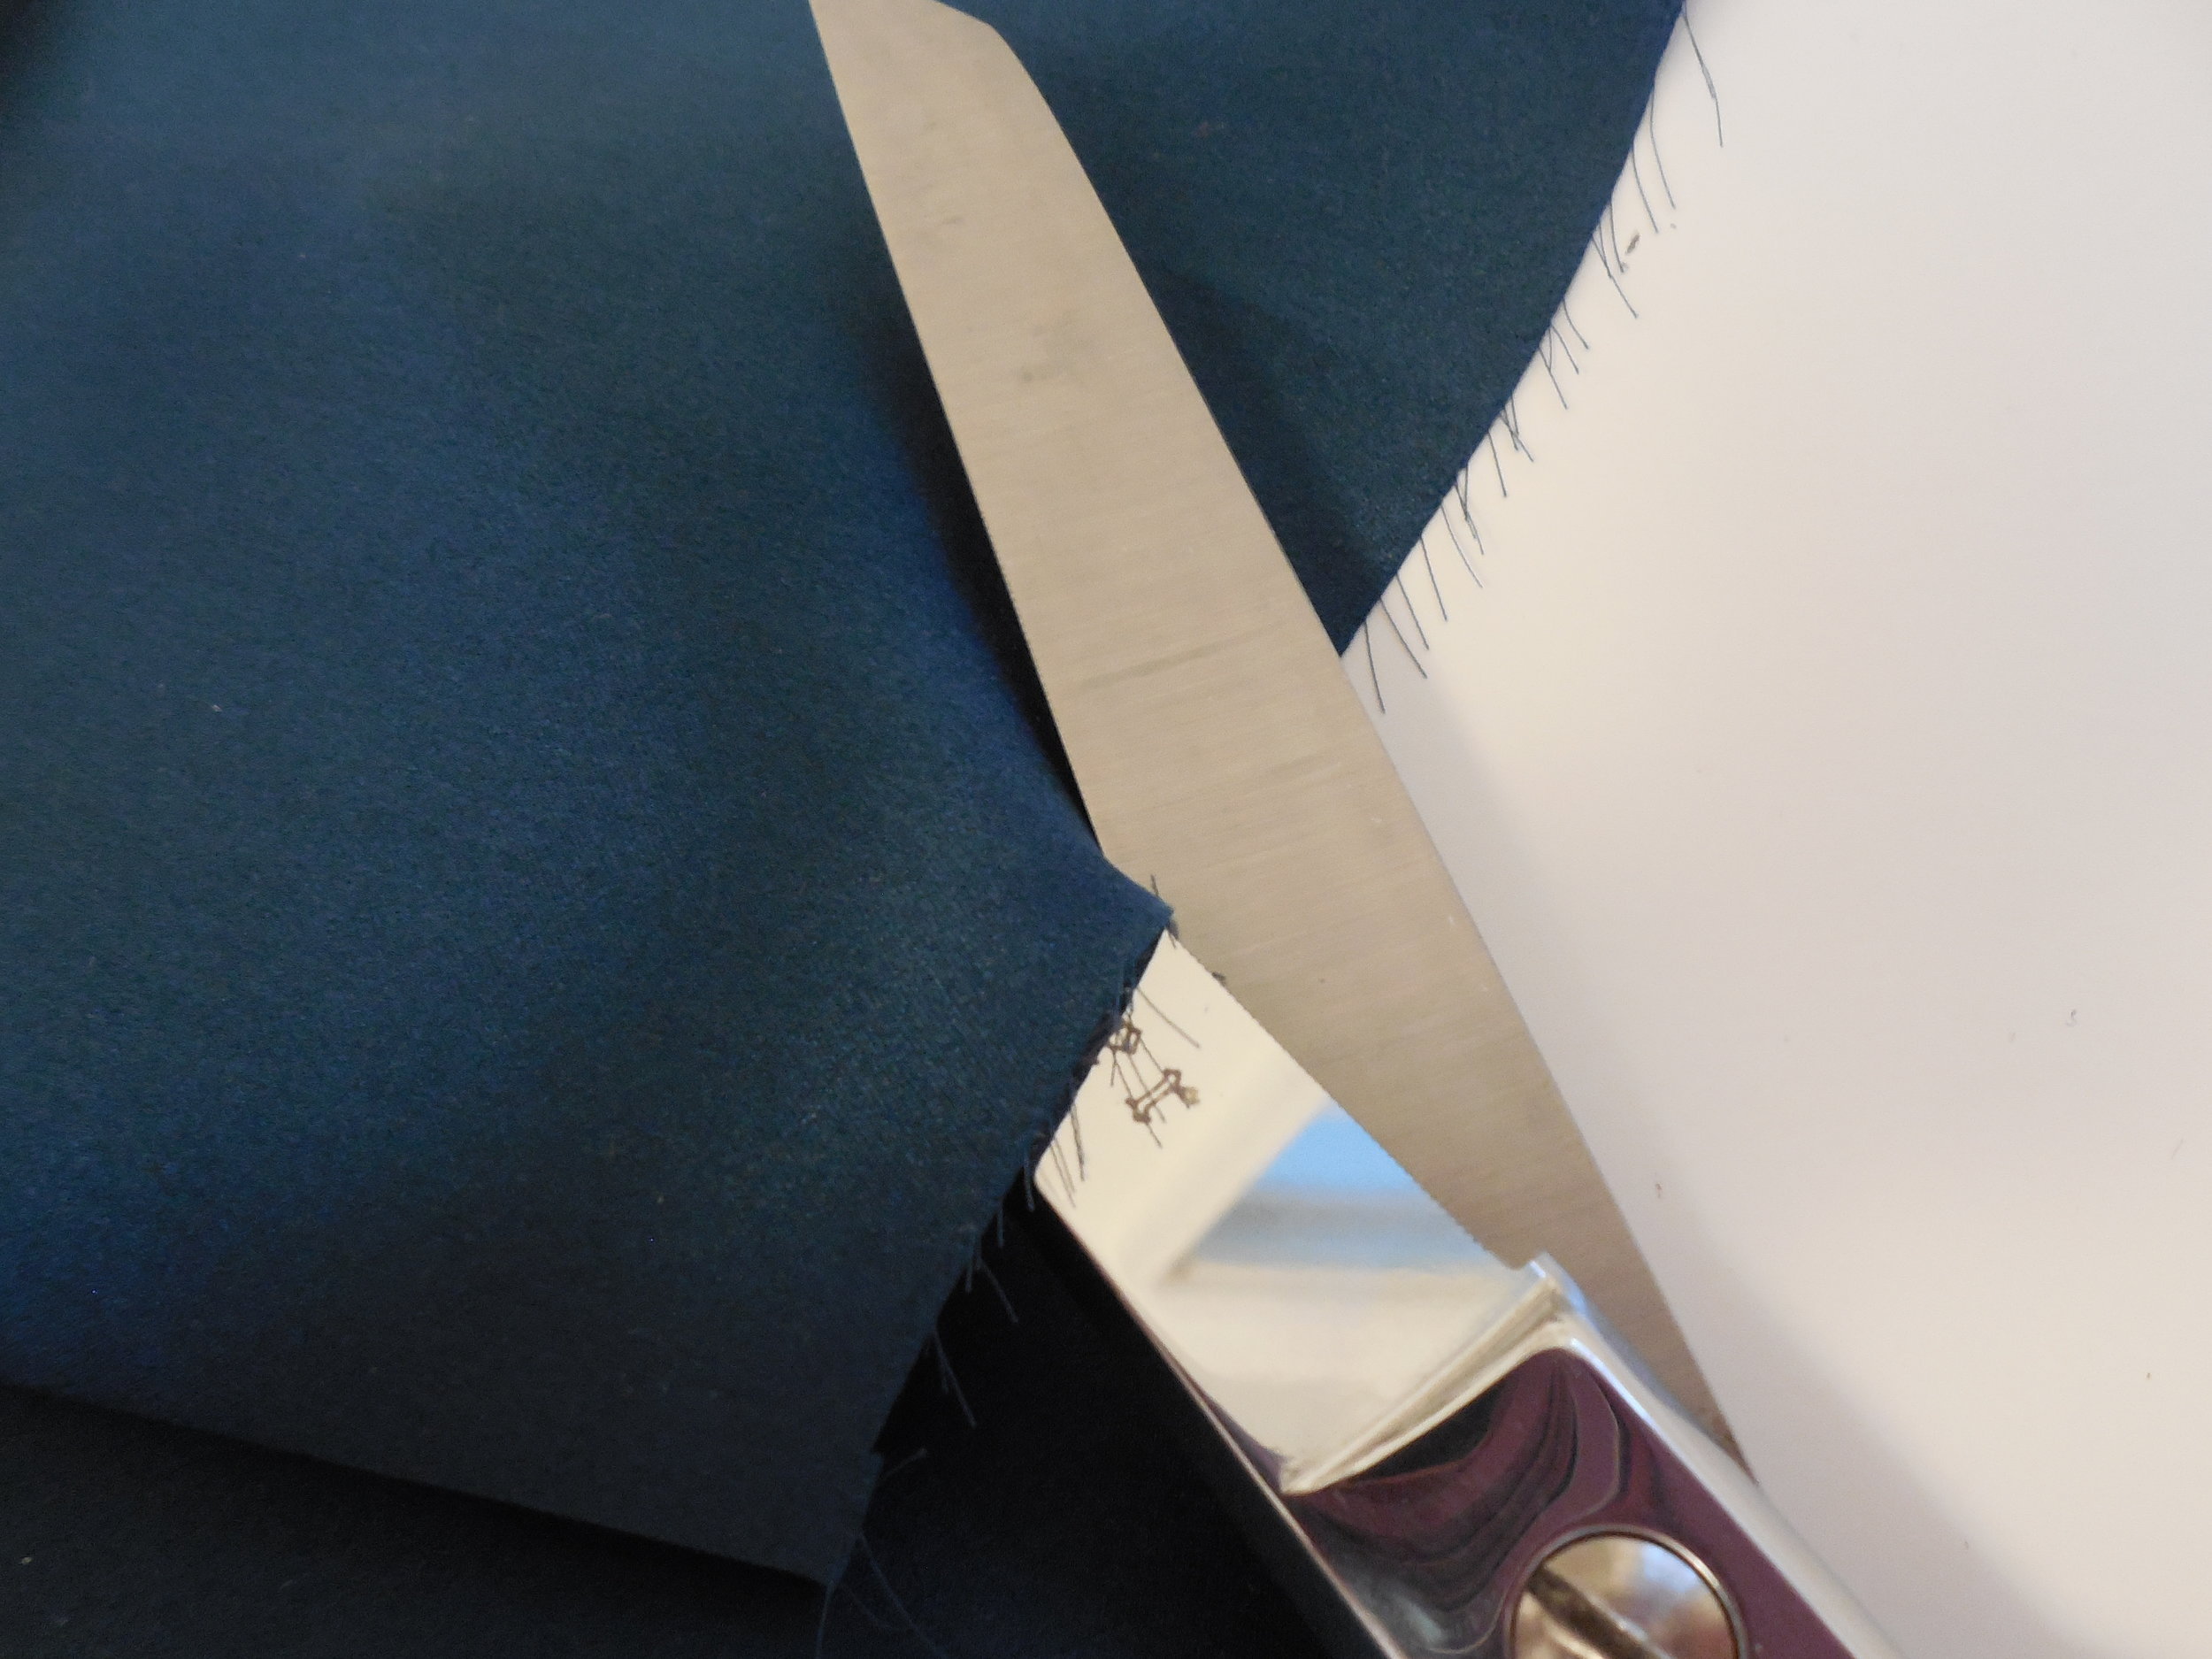 For silks and slippery fabrics - These microserrated Gingher shears grip fabric in the tiny teeth of their ultrasharp blades. The most slippery silk charmeuse respects their steely control. Nothing escapes.